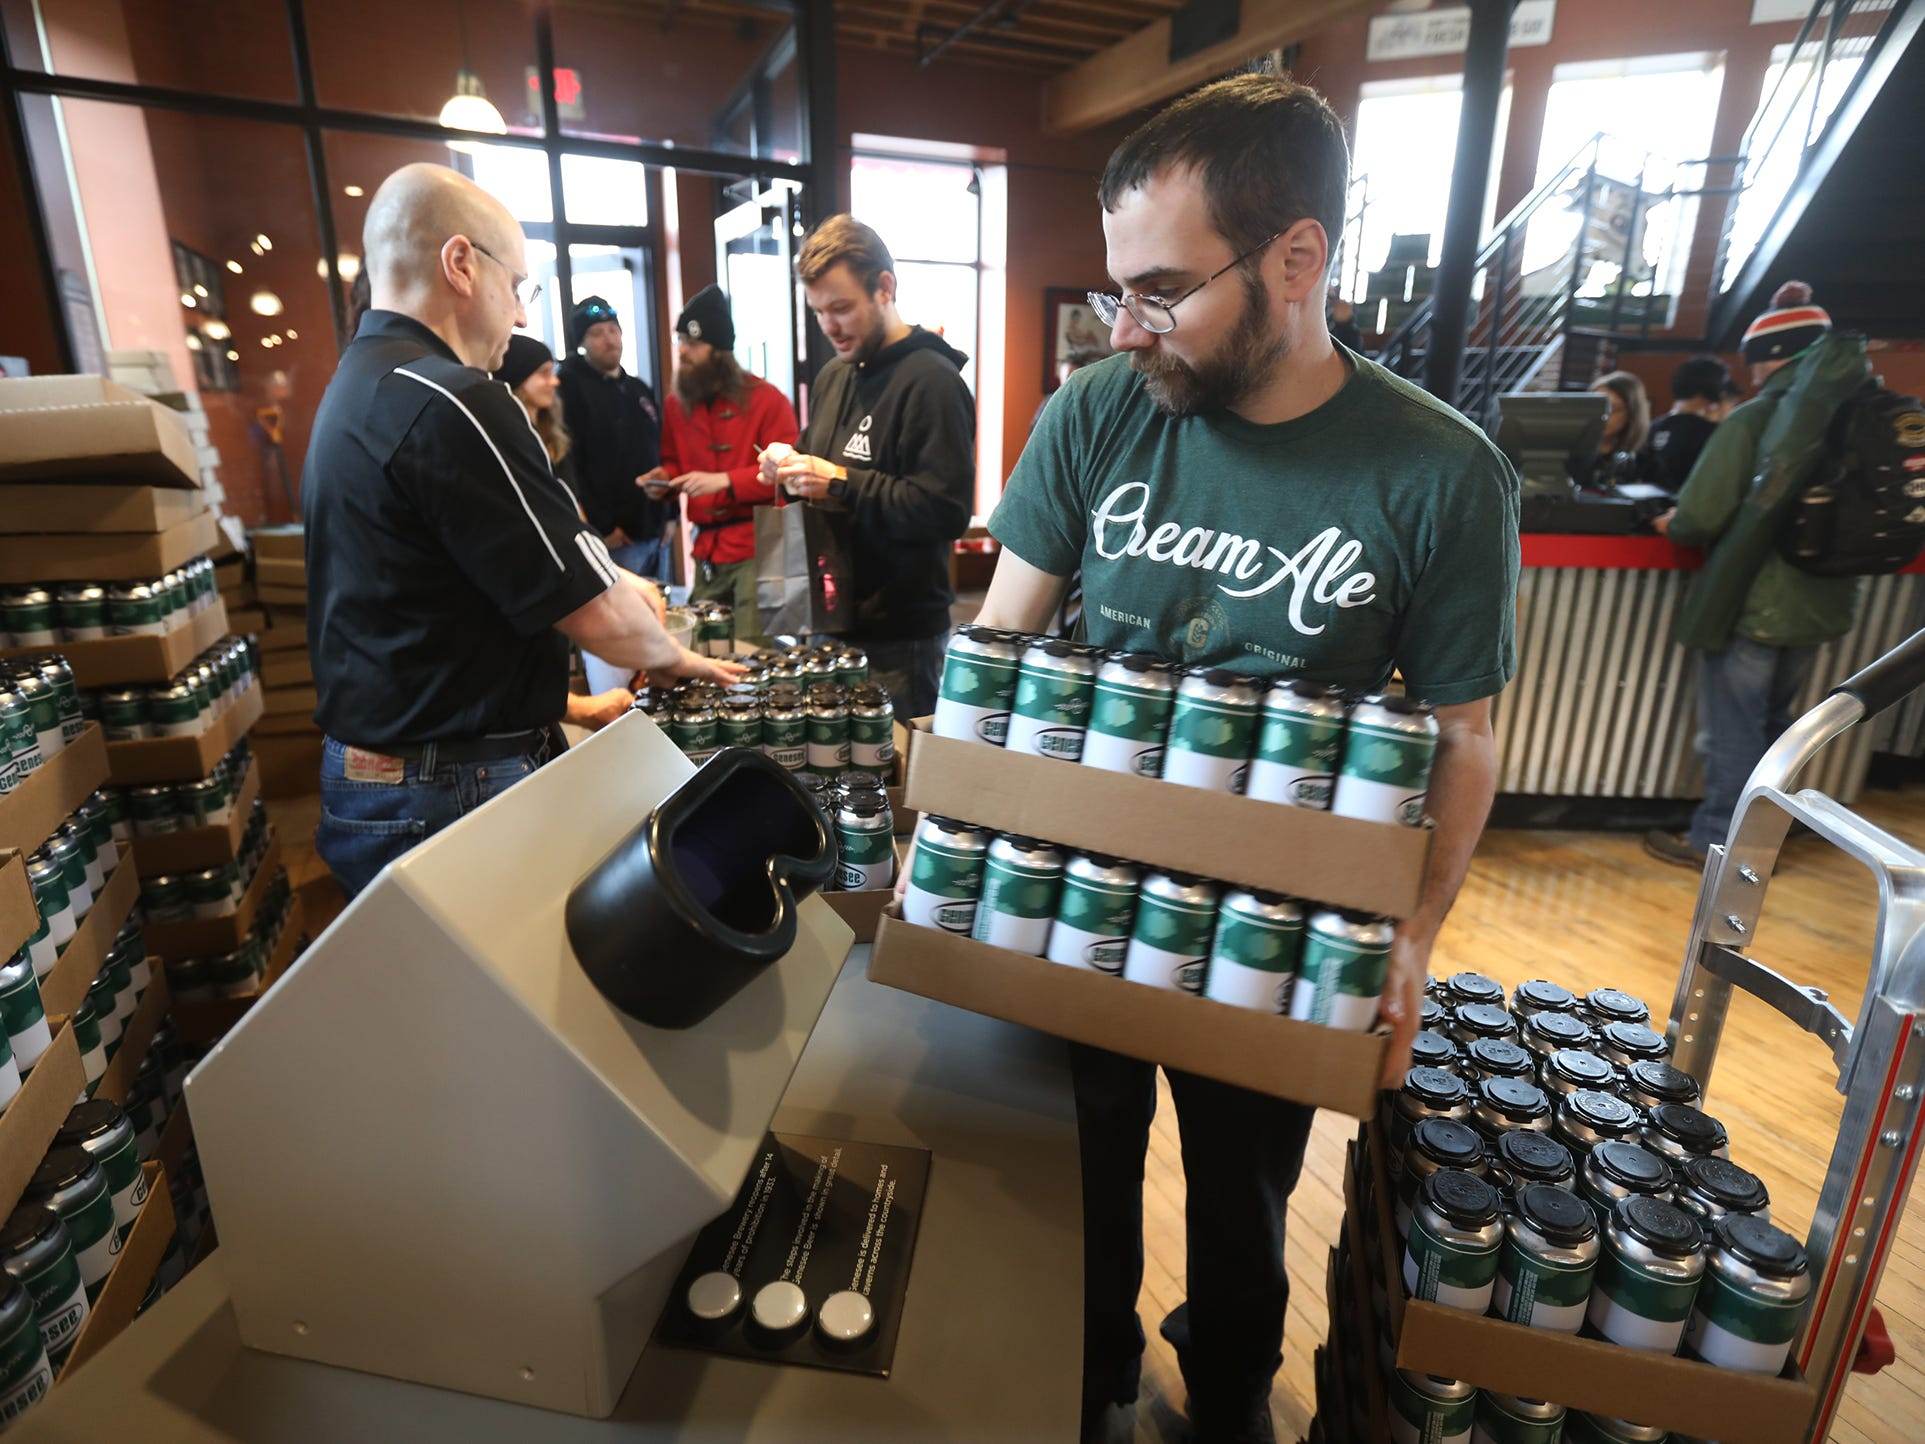 Chris Amico, brings out more cases of Genesee Dream Ale.